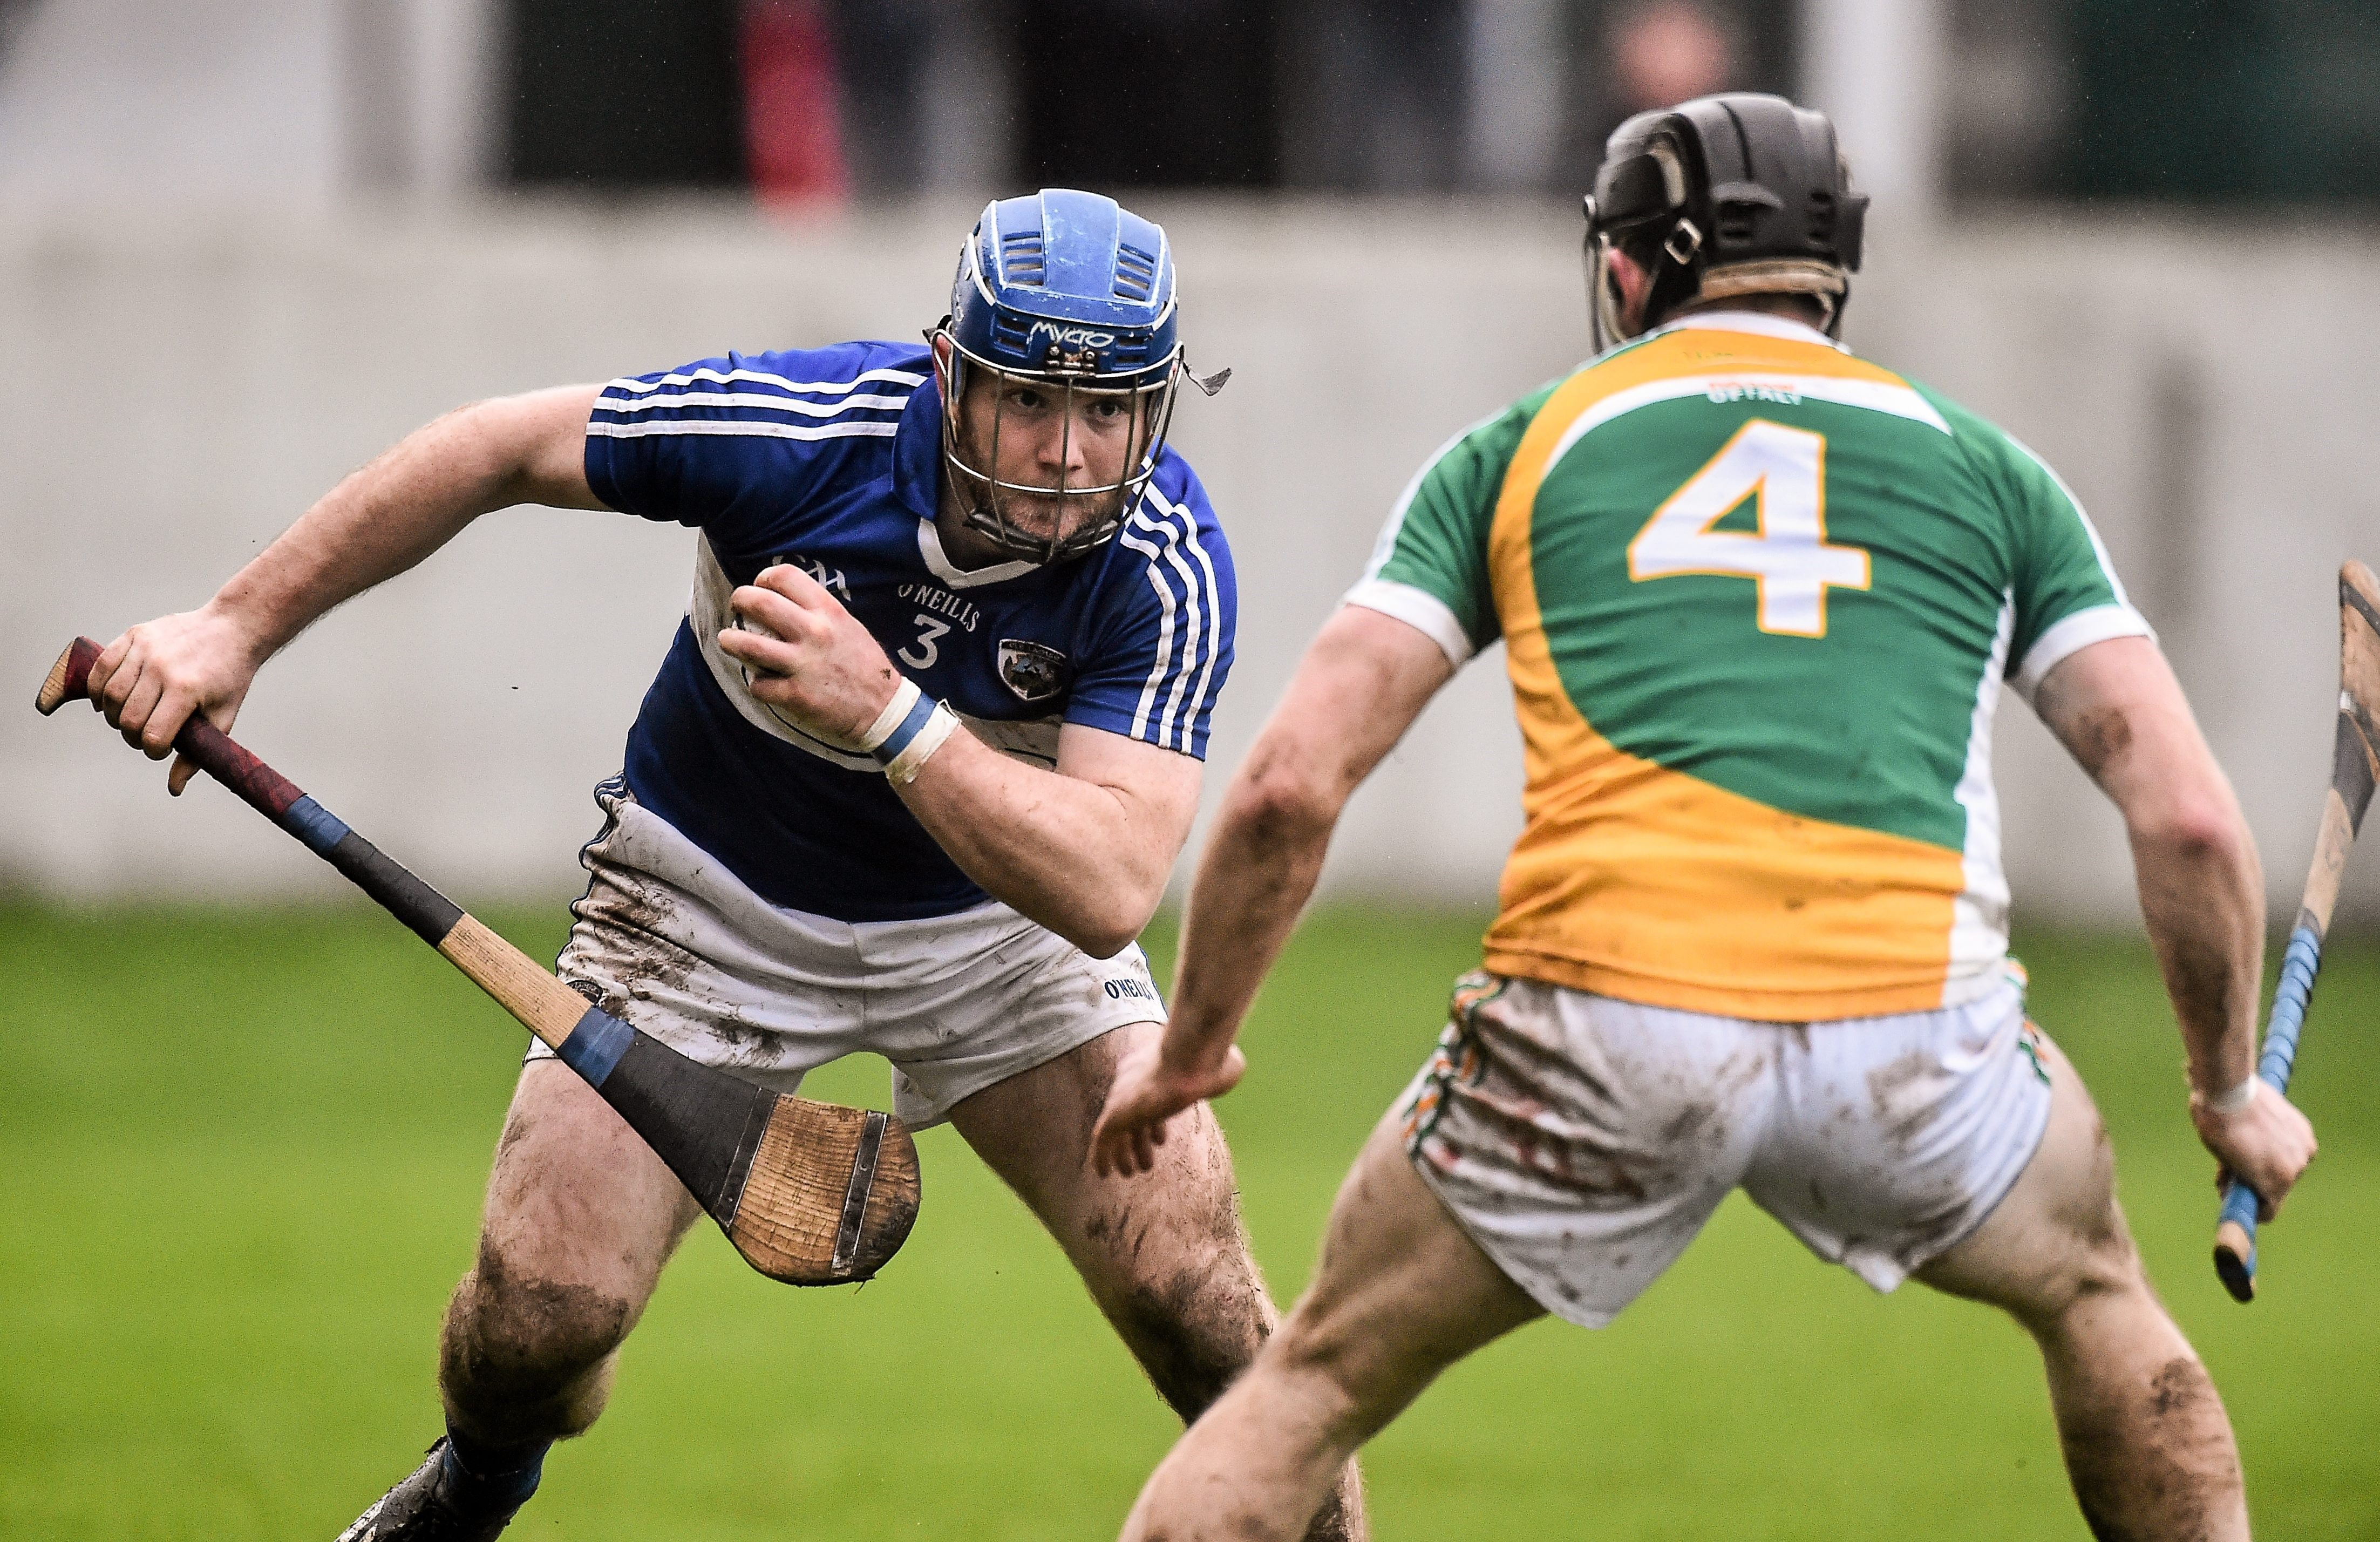 Darren Maher in action against Sean Gardiner of Offaly